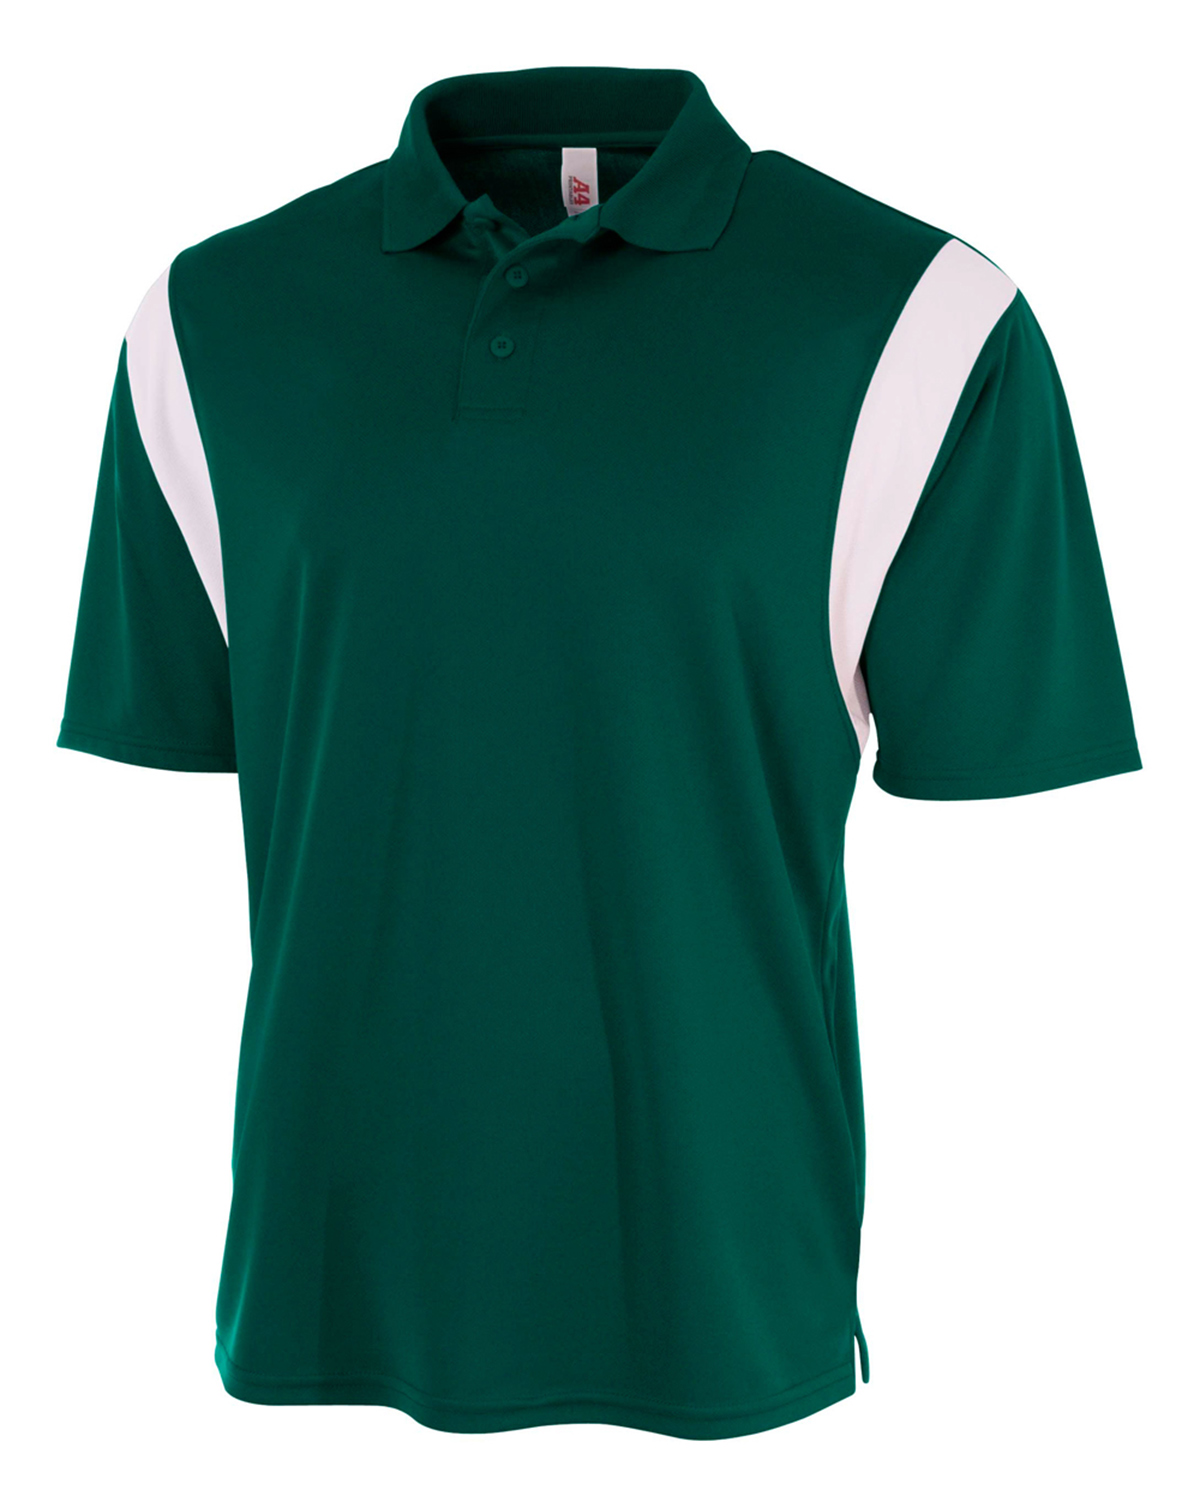 A4 Drop Ship N3266 - Men's Color Blocked Polo Shirt w/ Knit Collar